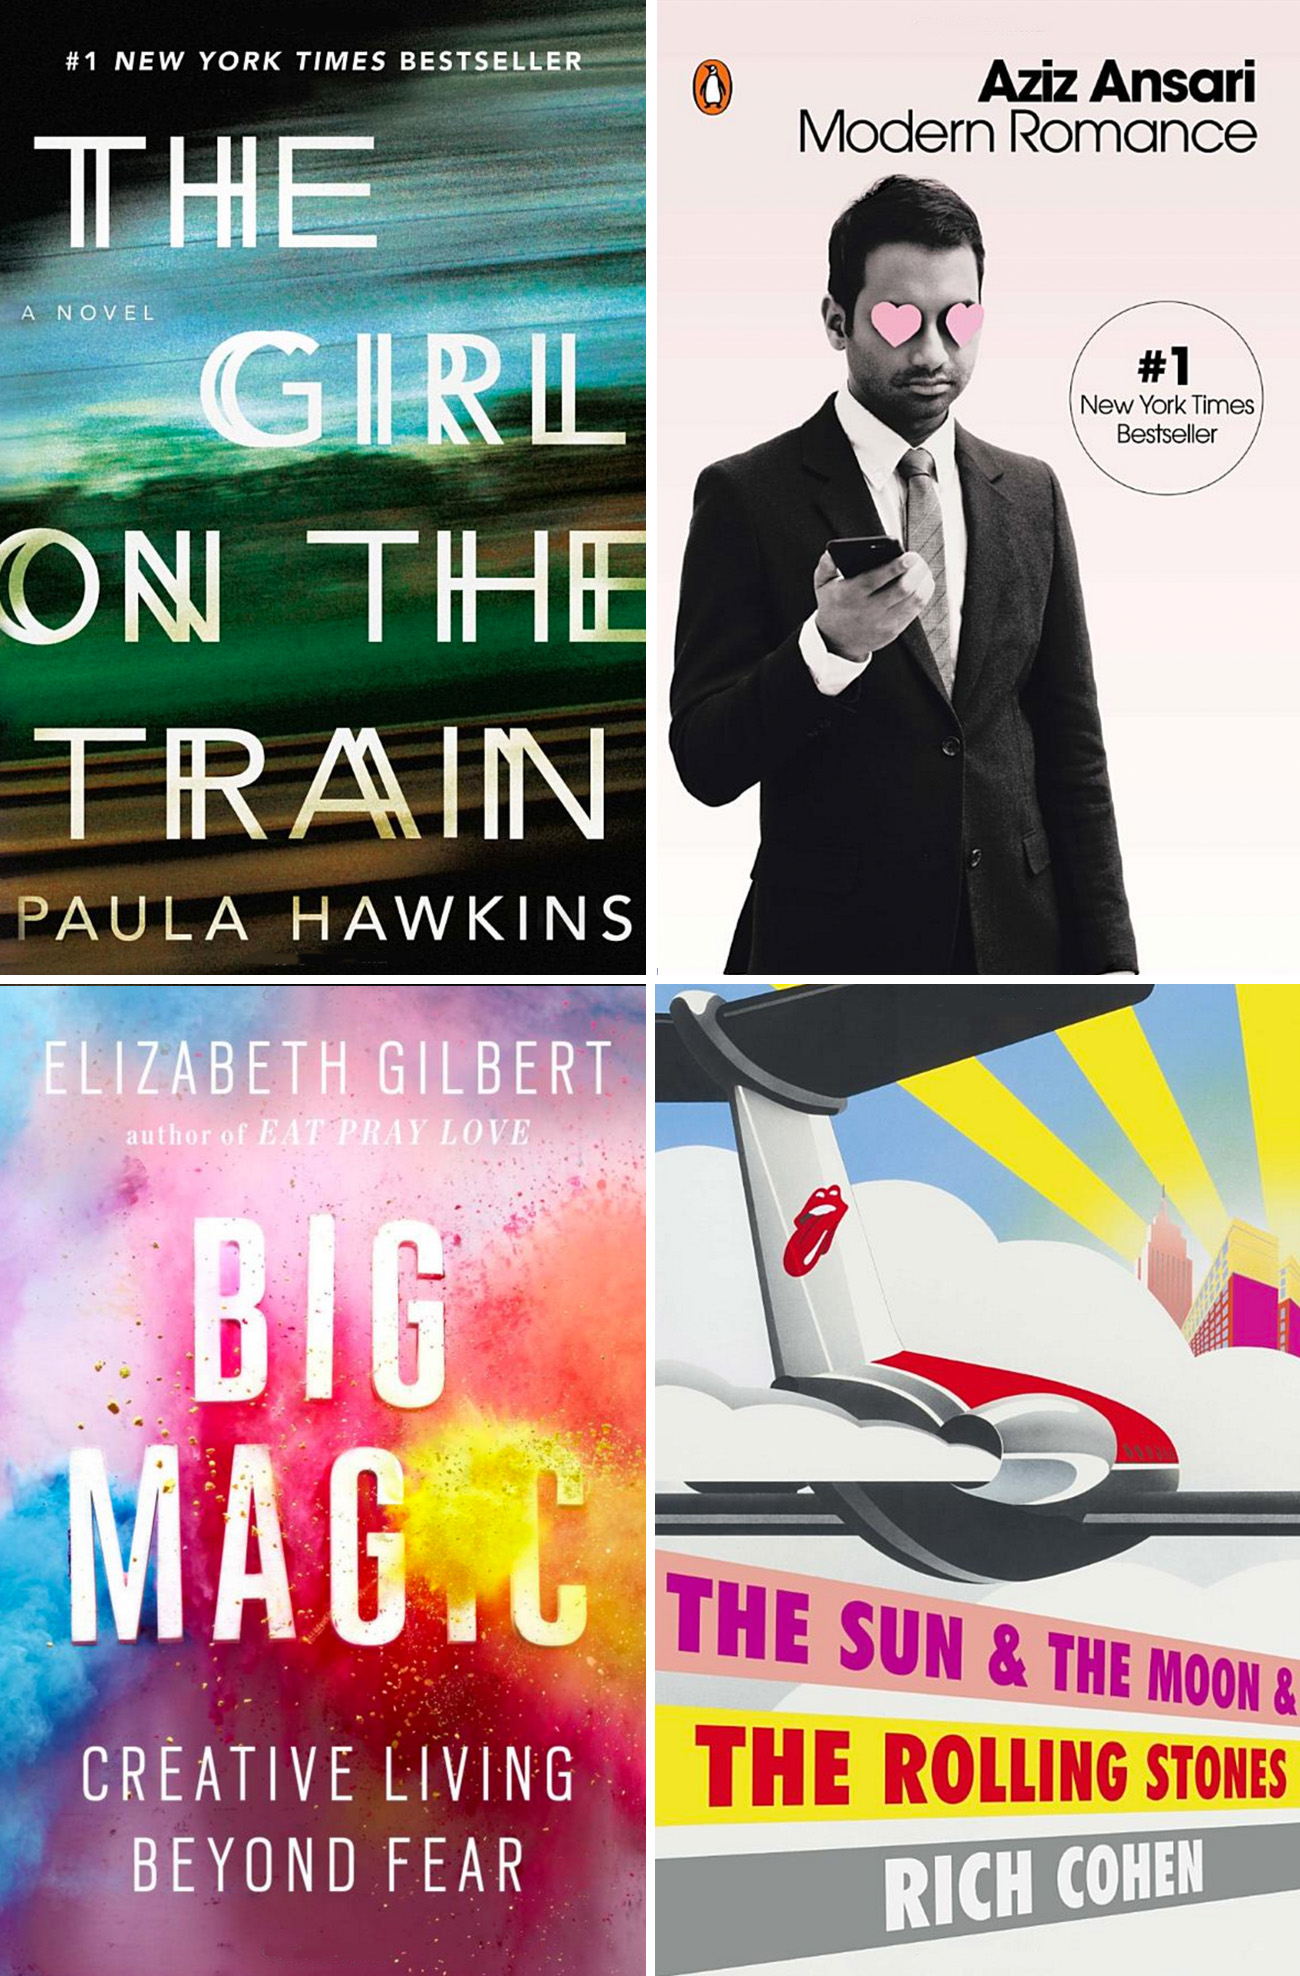 12 Perfect Books for Your Summer Vacay